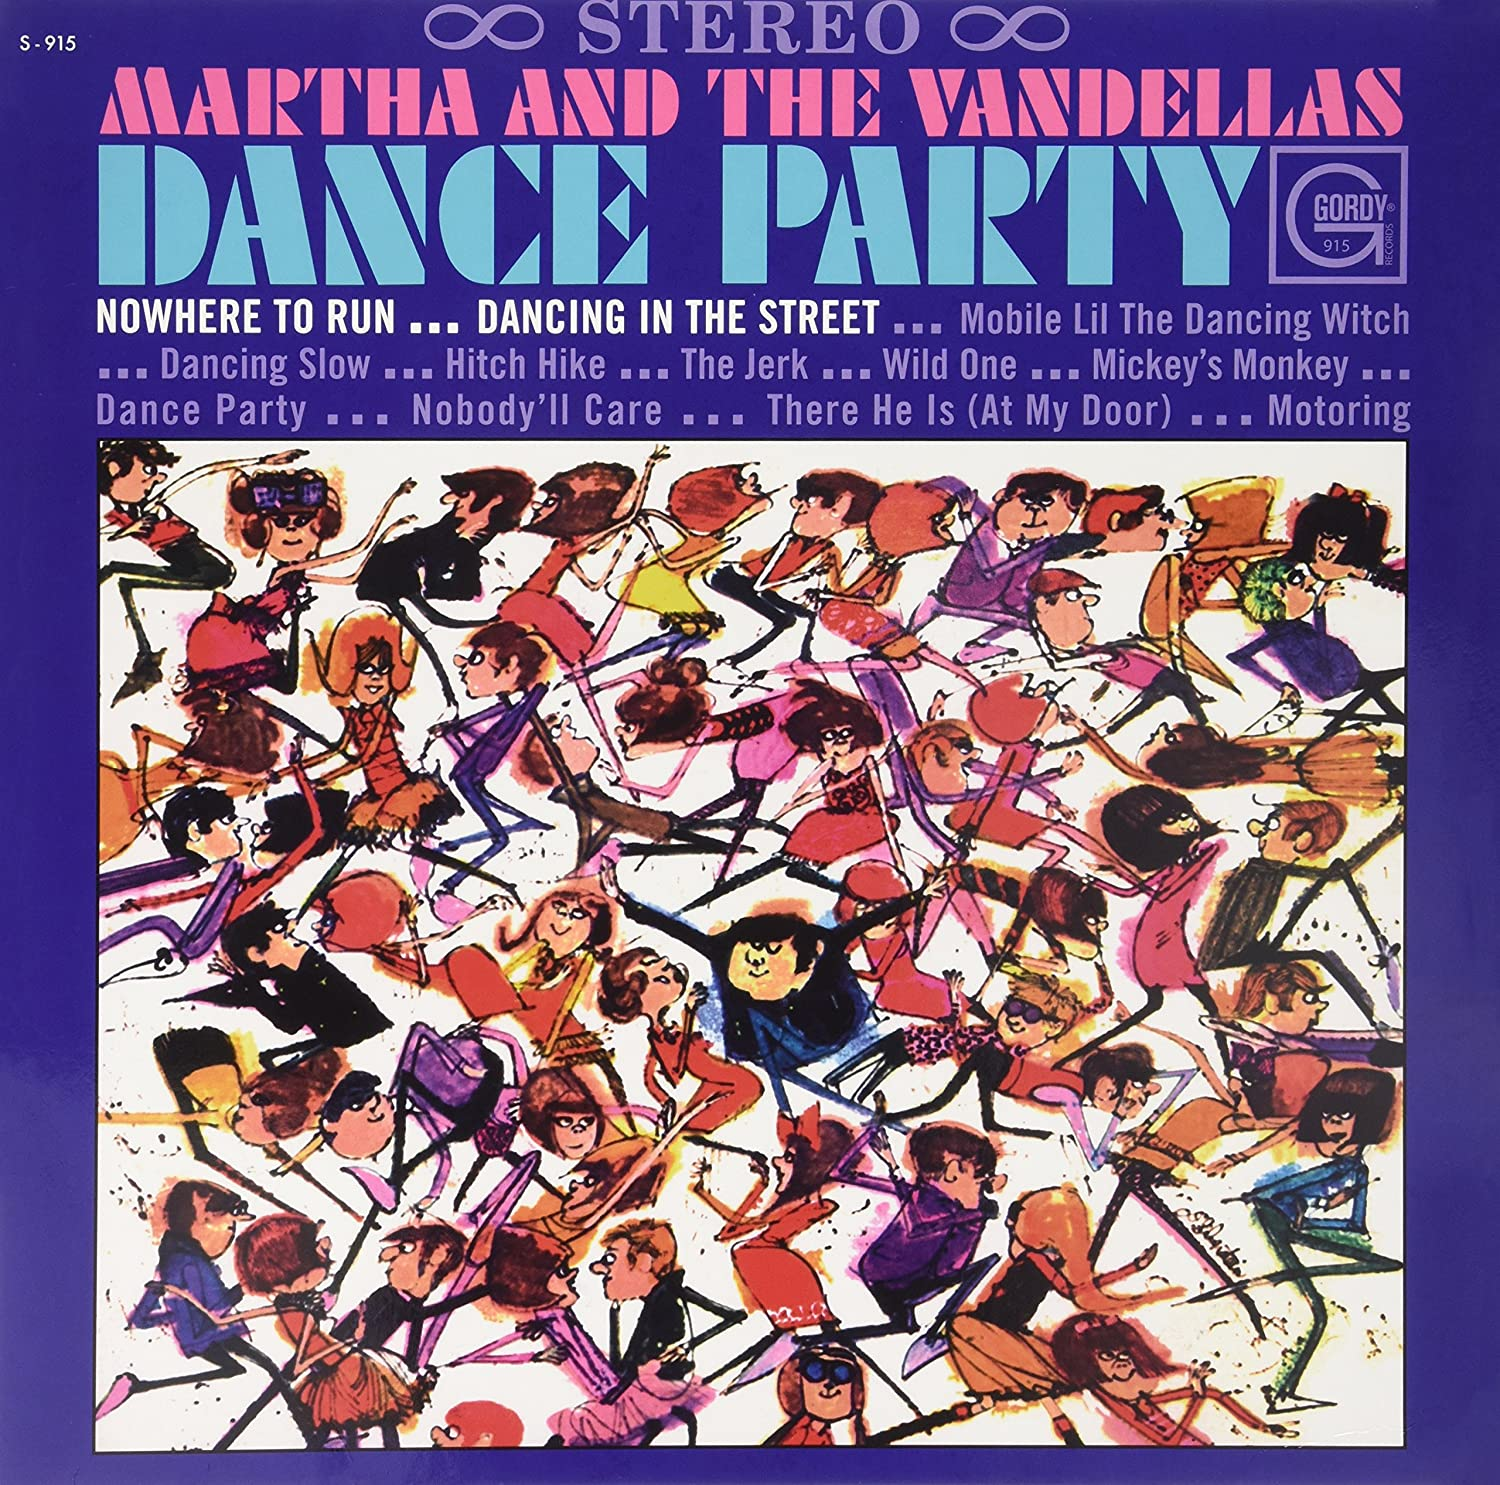 Martha and The Vandellas: Dancing In The Street